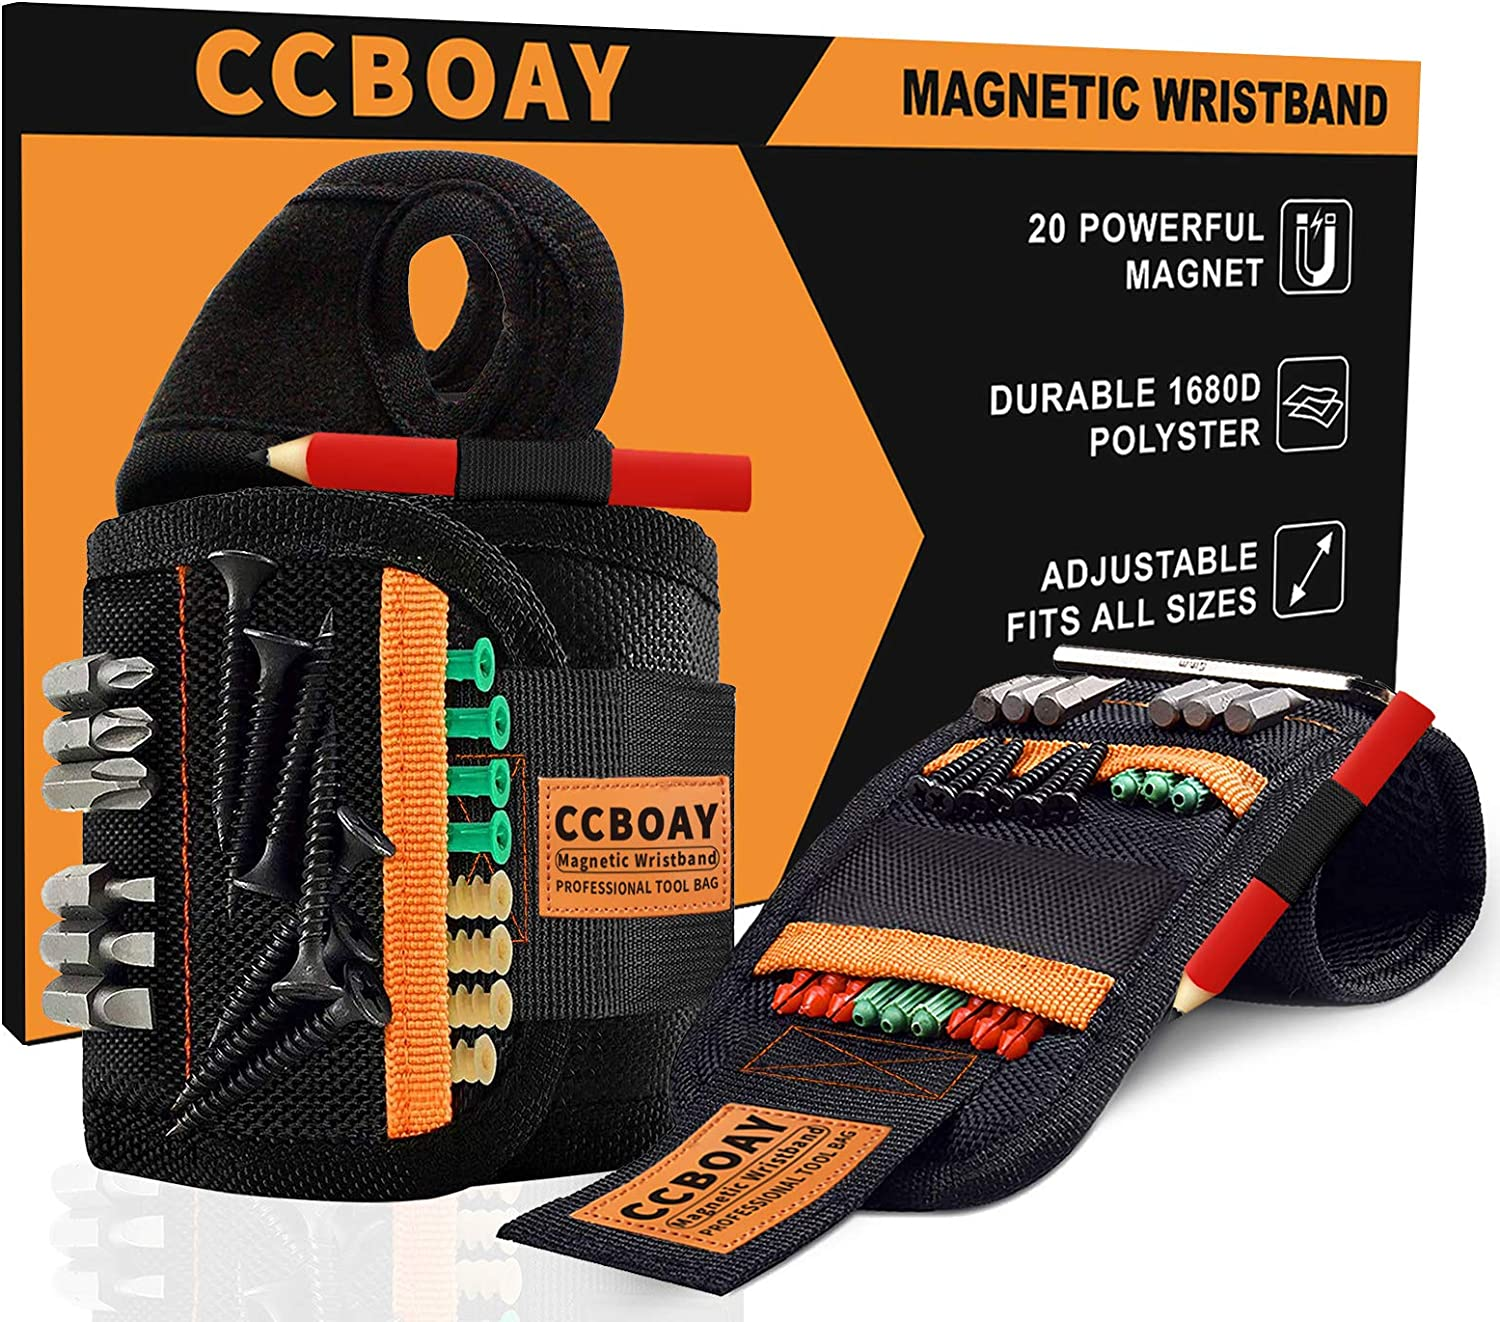 Gadgets for Men Women Perfect Tool Gifts for Him Repairman Gifts for DIY Handyman Carpenter Boyfriend Husband Mens Dad CCOBAY Magnetic Wristband with 20 Strong Magnetic for Holding Screws